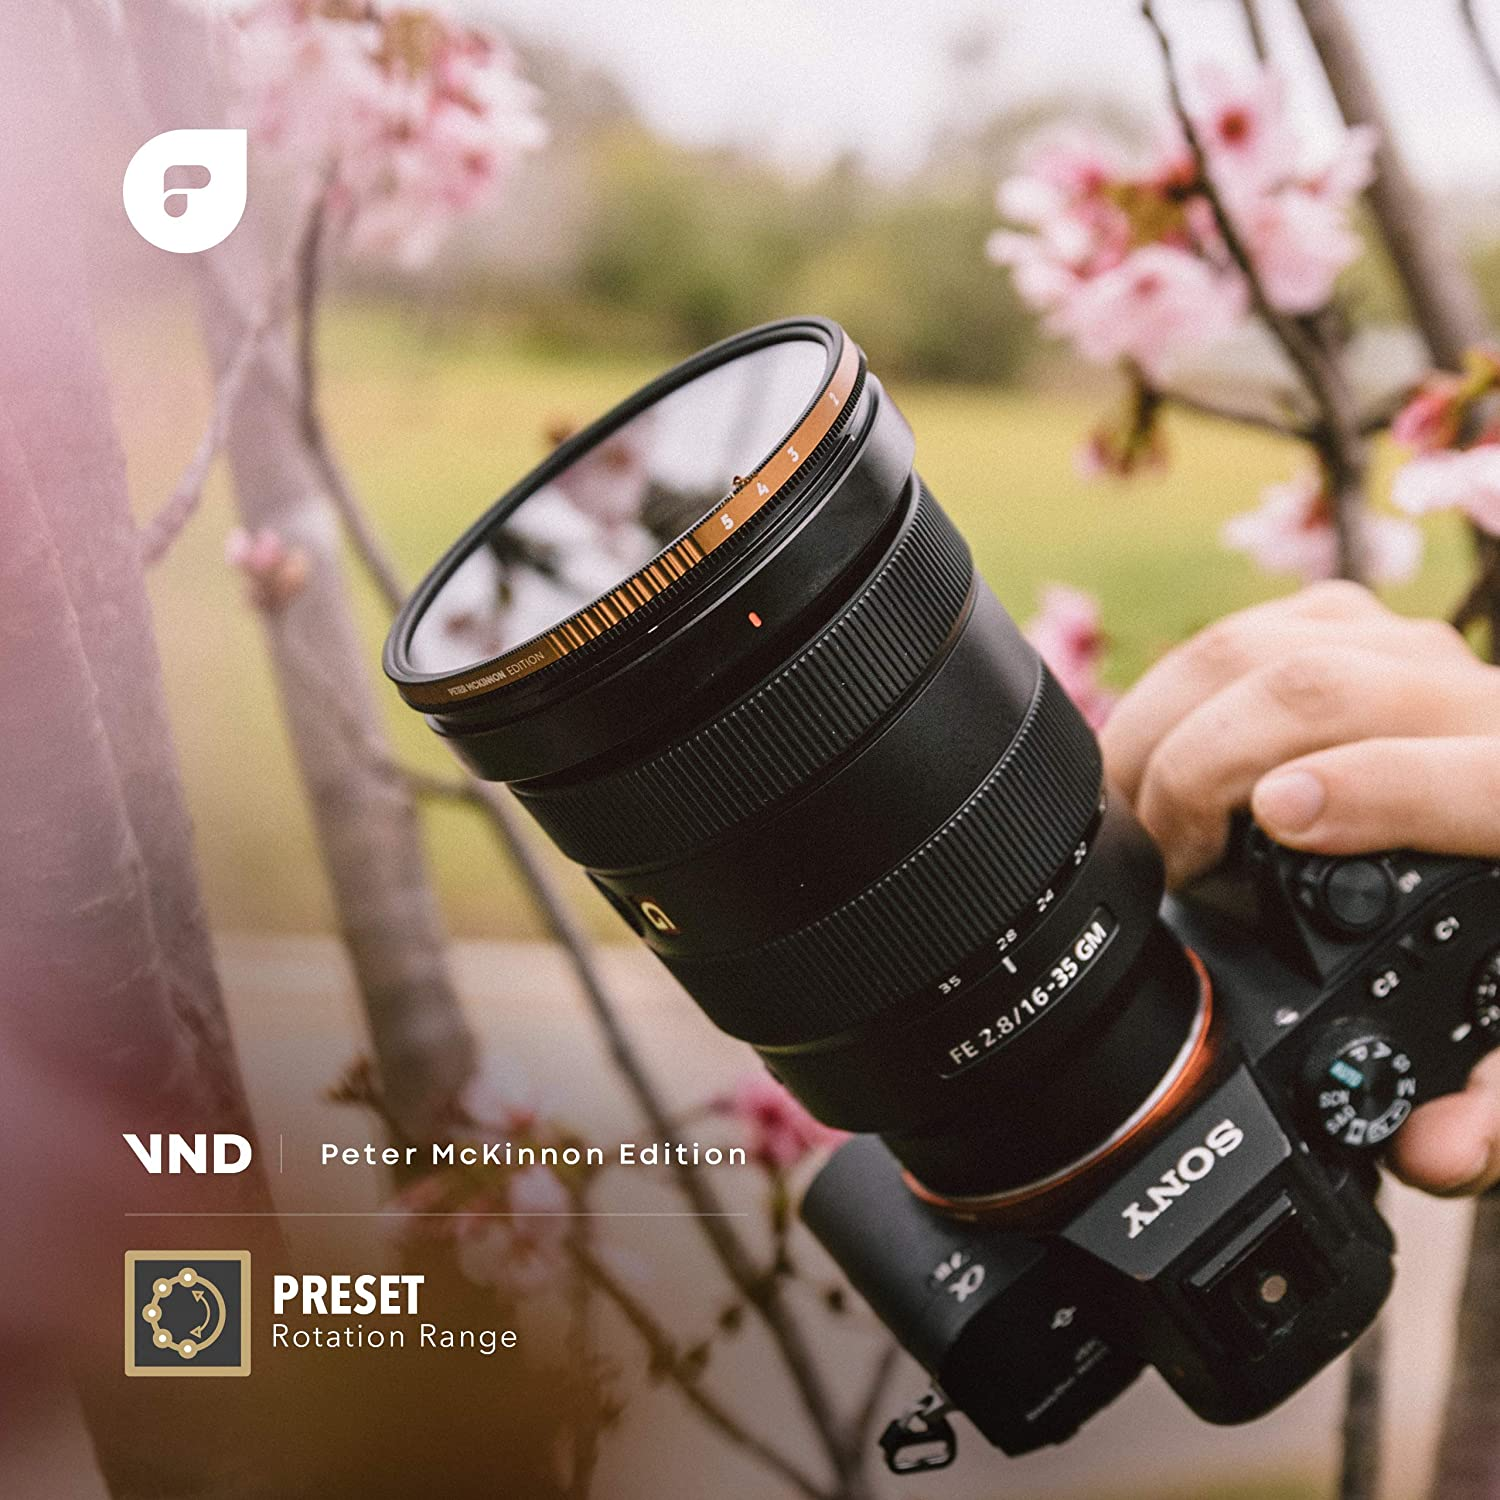 PolarPro 82mm Variable ND Filter (2 to 5 Stop) - Peter McKinnon Edition